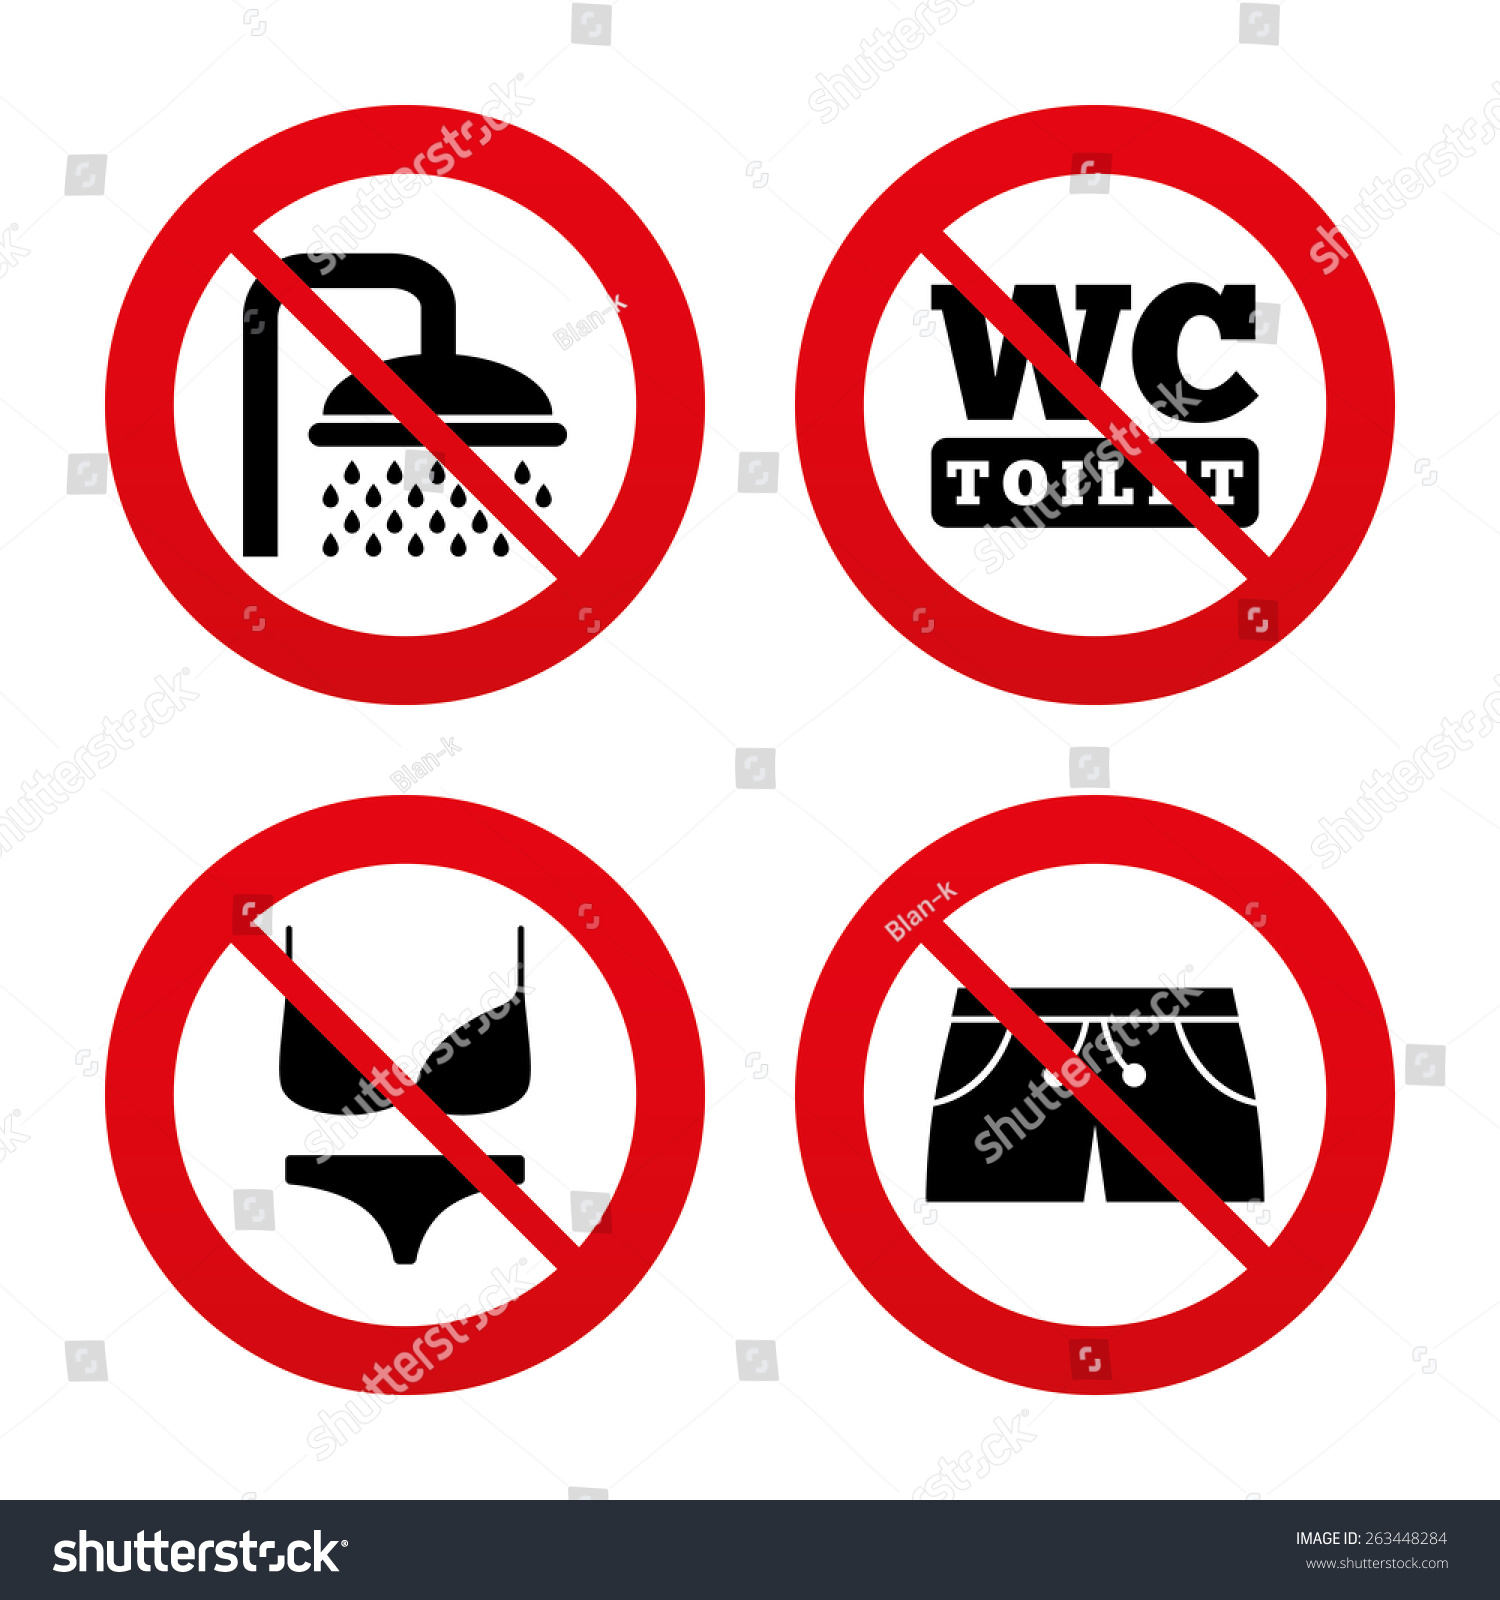 No ban or stop signs swimming pool icons shower water drops and